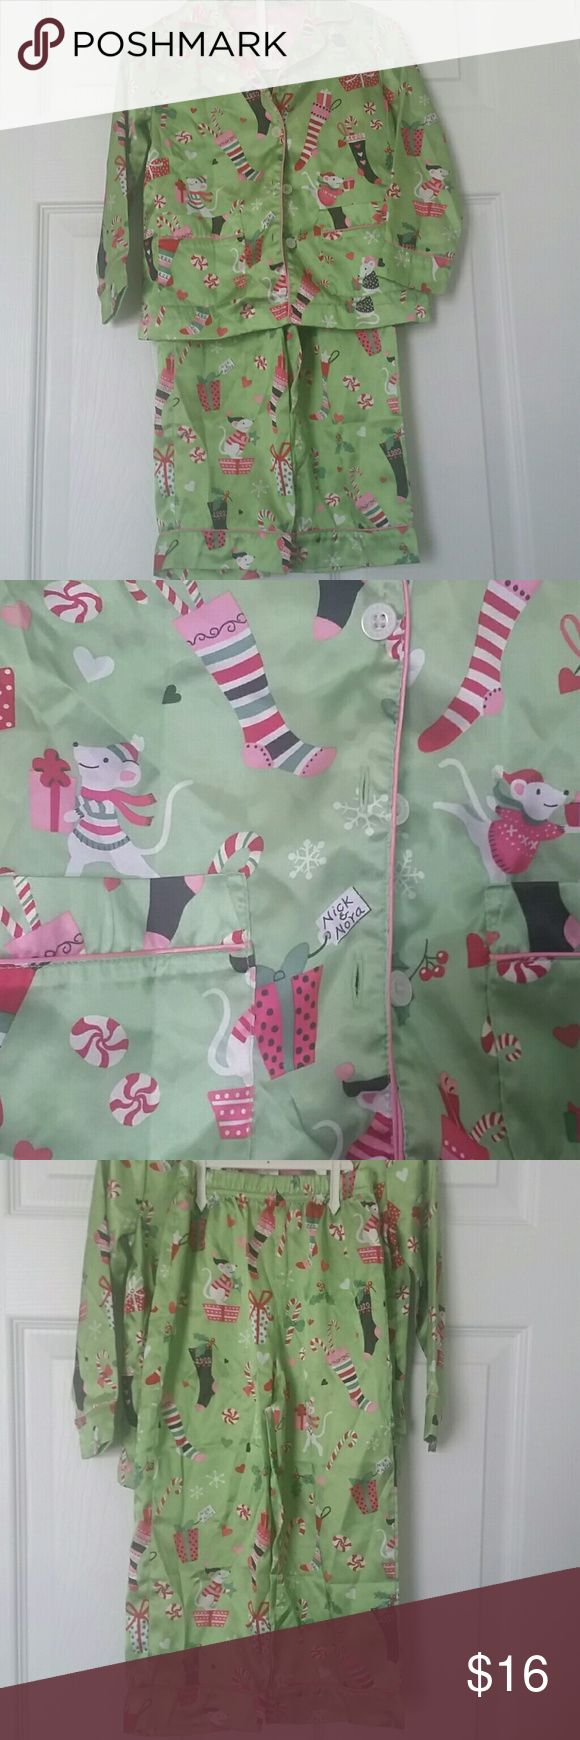 Nick & Nora Christmas Pajamas Light green satin pajama top and pant set trimmed in pink.  Has the adorable nick and Nora mice adorned in red and pink.  Fabic covered in Christmas stockings, gifts, candy canes, hearts, and mouse characters.  Long sleeve top buttons up front and has pockets.  elastic waist pants. Nick and Nora Pajamas Pajama Sets